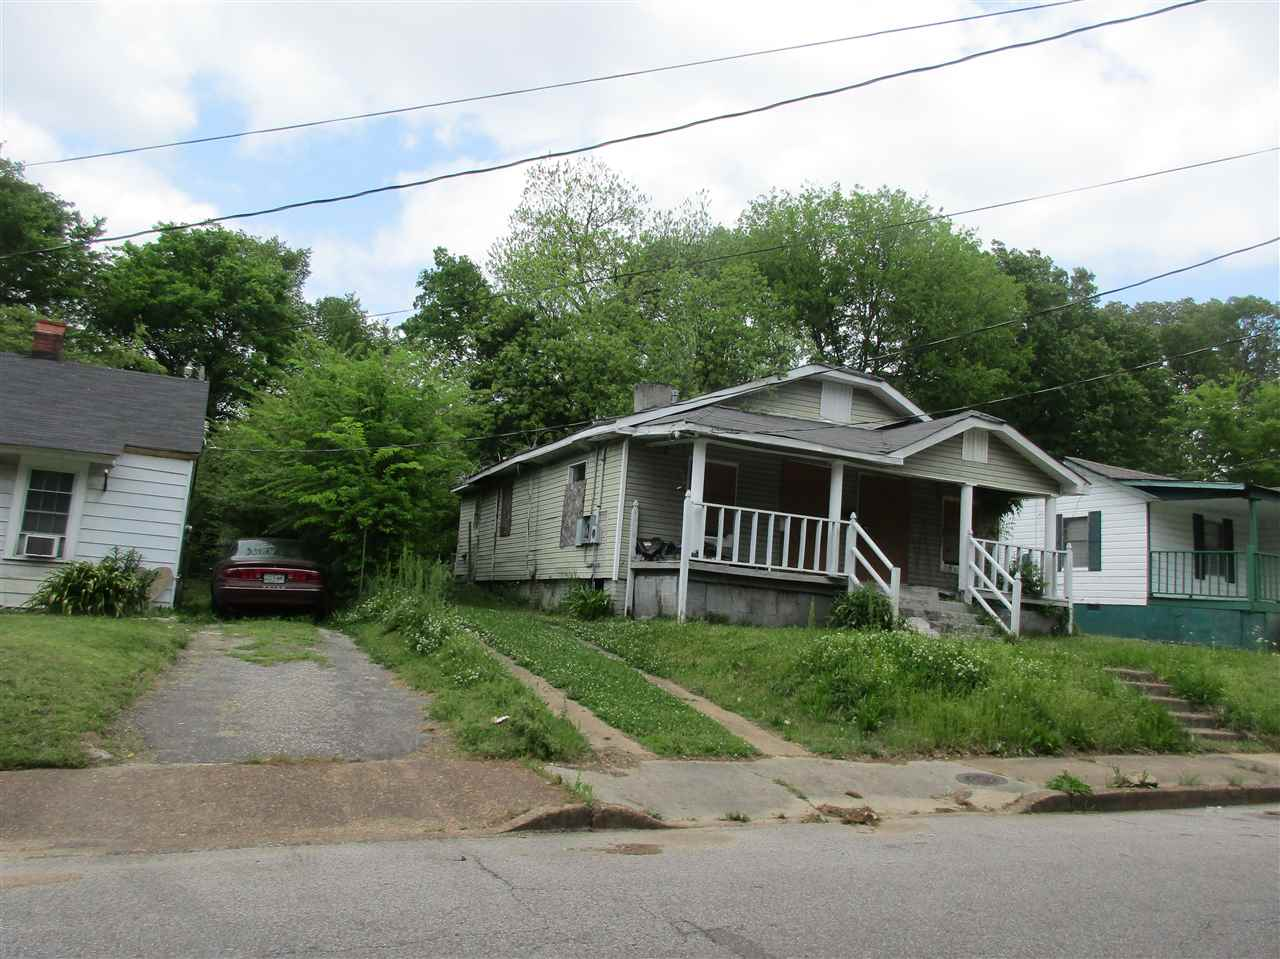 Property for sale at 2846 Hale Ave, Memphis,  TN 38112